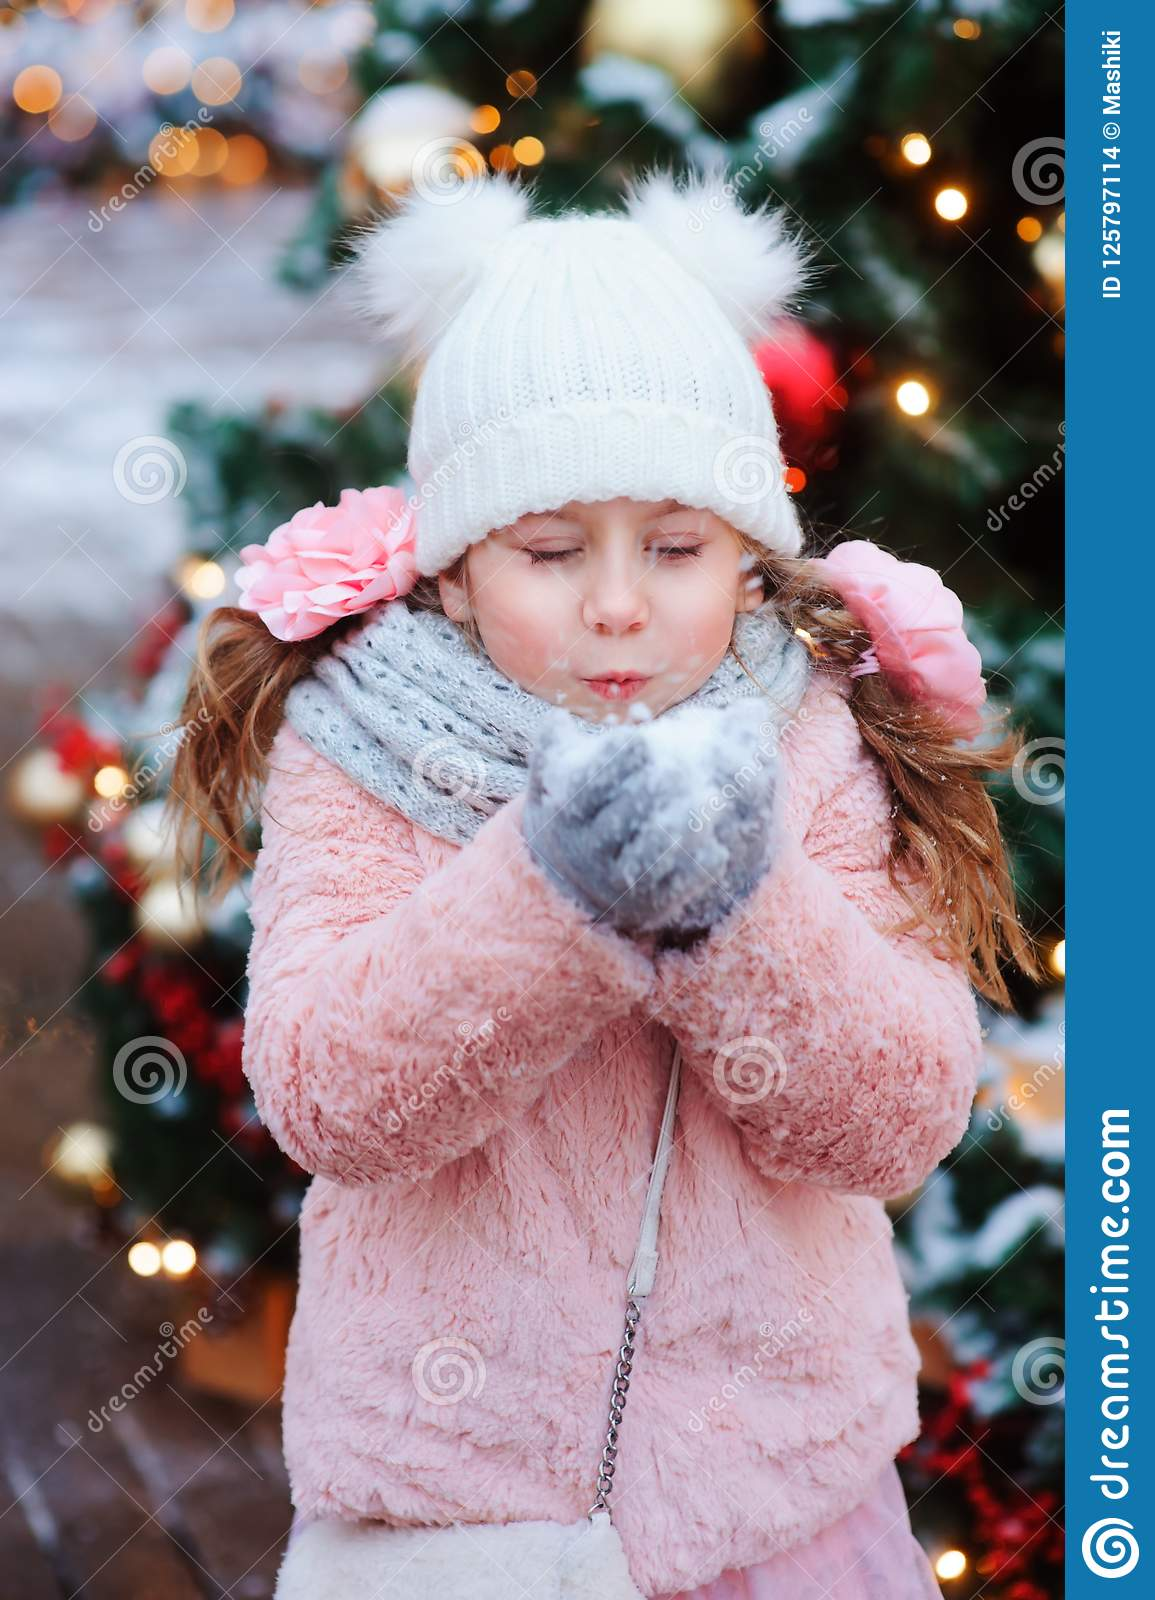 happy child girl playing outdoor on the walk in snowy winter city decorated for new year holidays